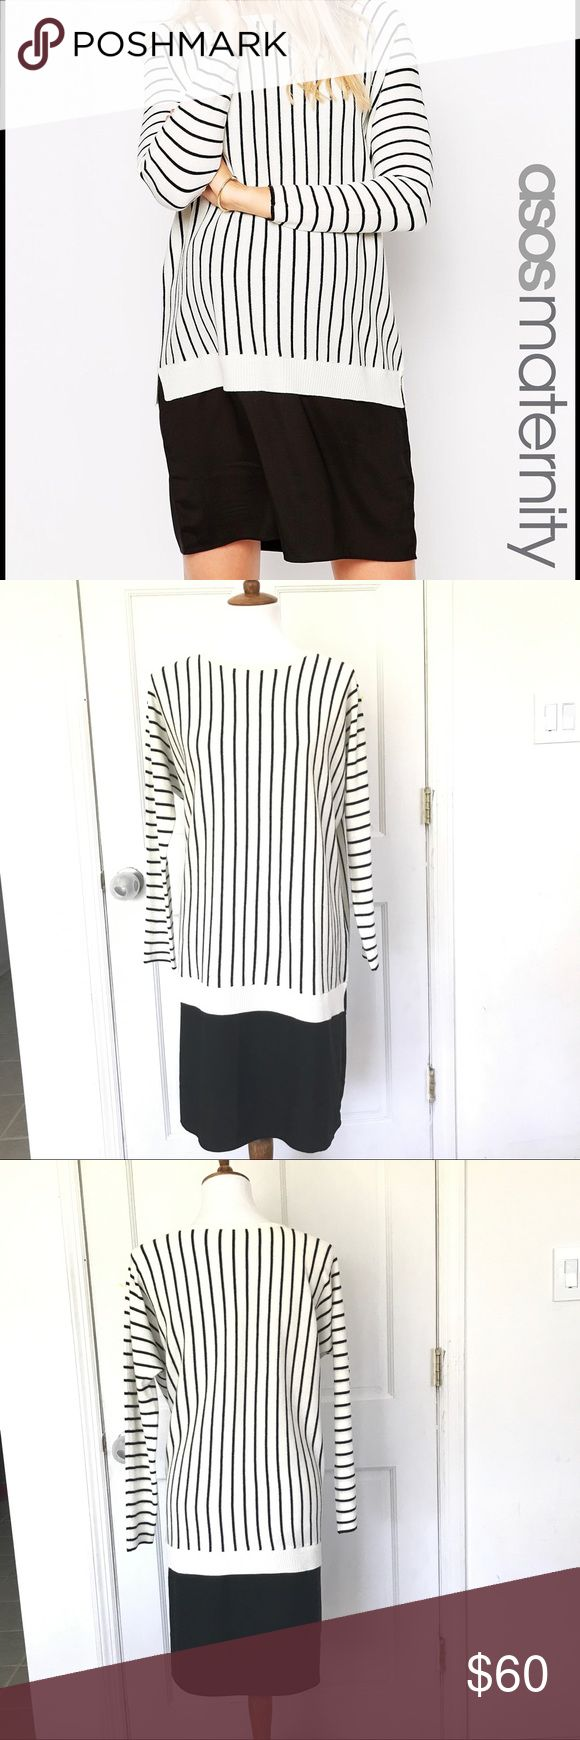 Asos black and white striped maternity dress New with tags super cute striped Asos maternity dress. Soft and stretchy. Size 6. Reasonable offers welcome. Please no trades or off site selling. Thank you. ASOS Maternity Dresses Long Sleeve